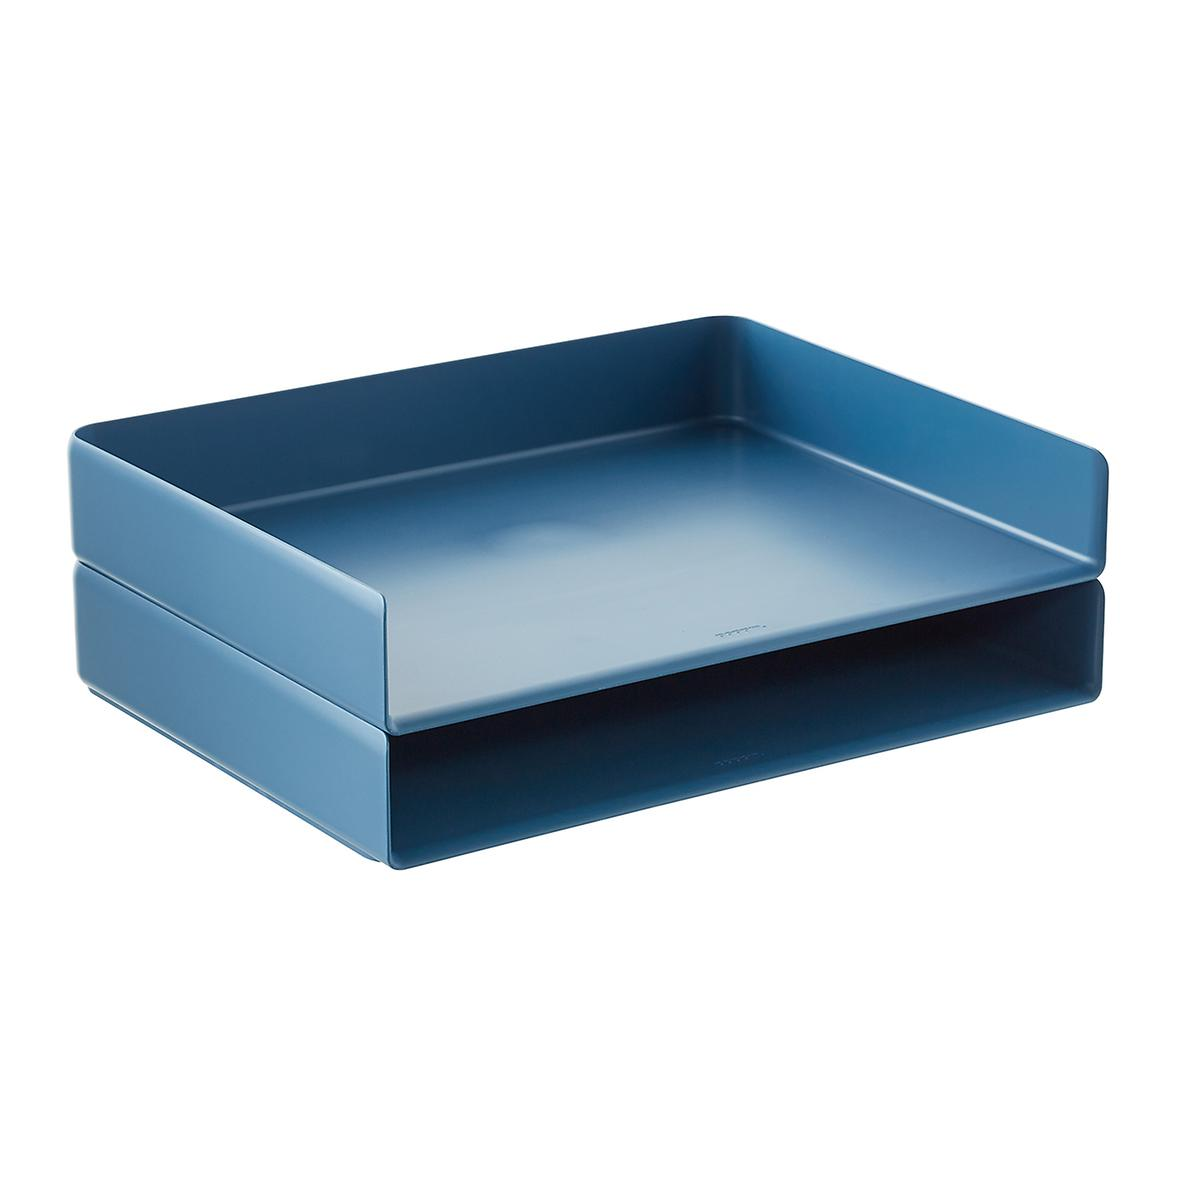 Slate Blue Poppin Stackable Landscape Letter Tray